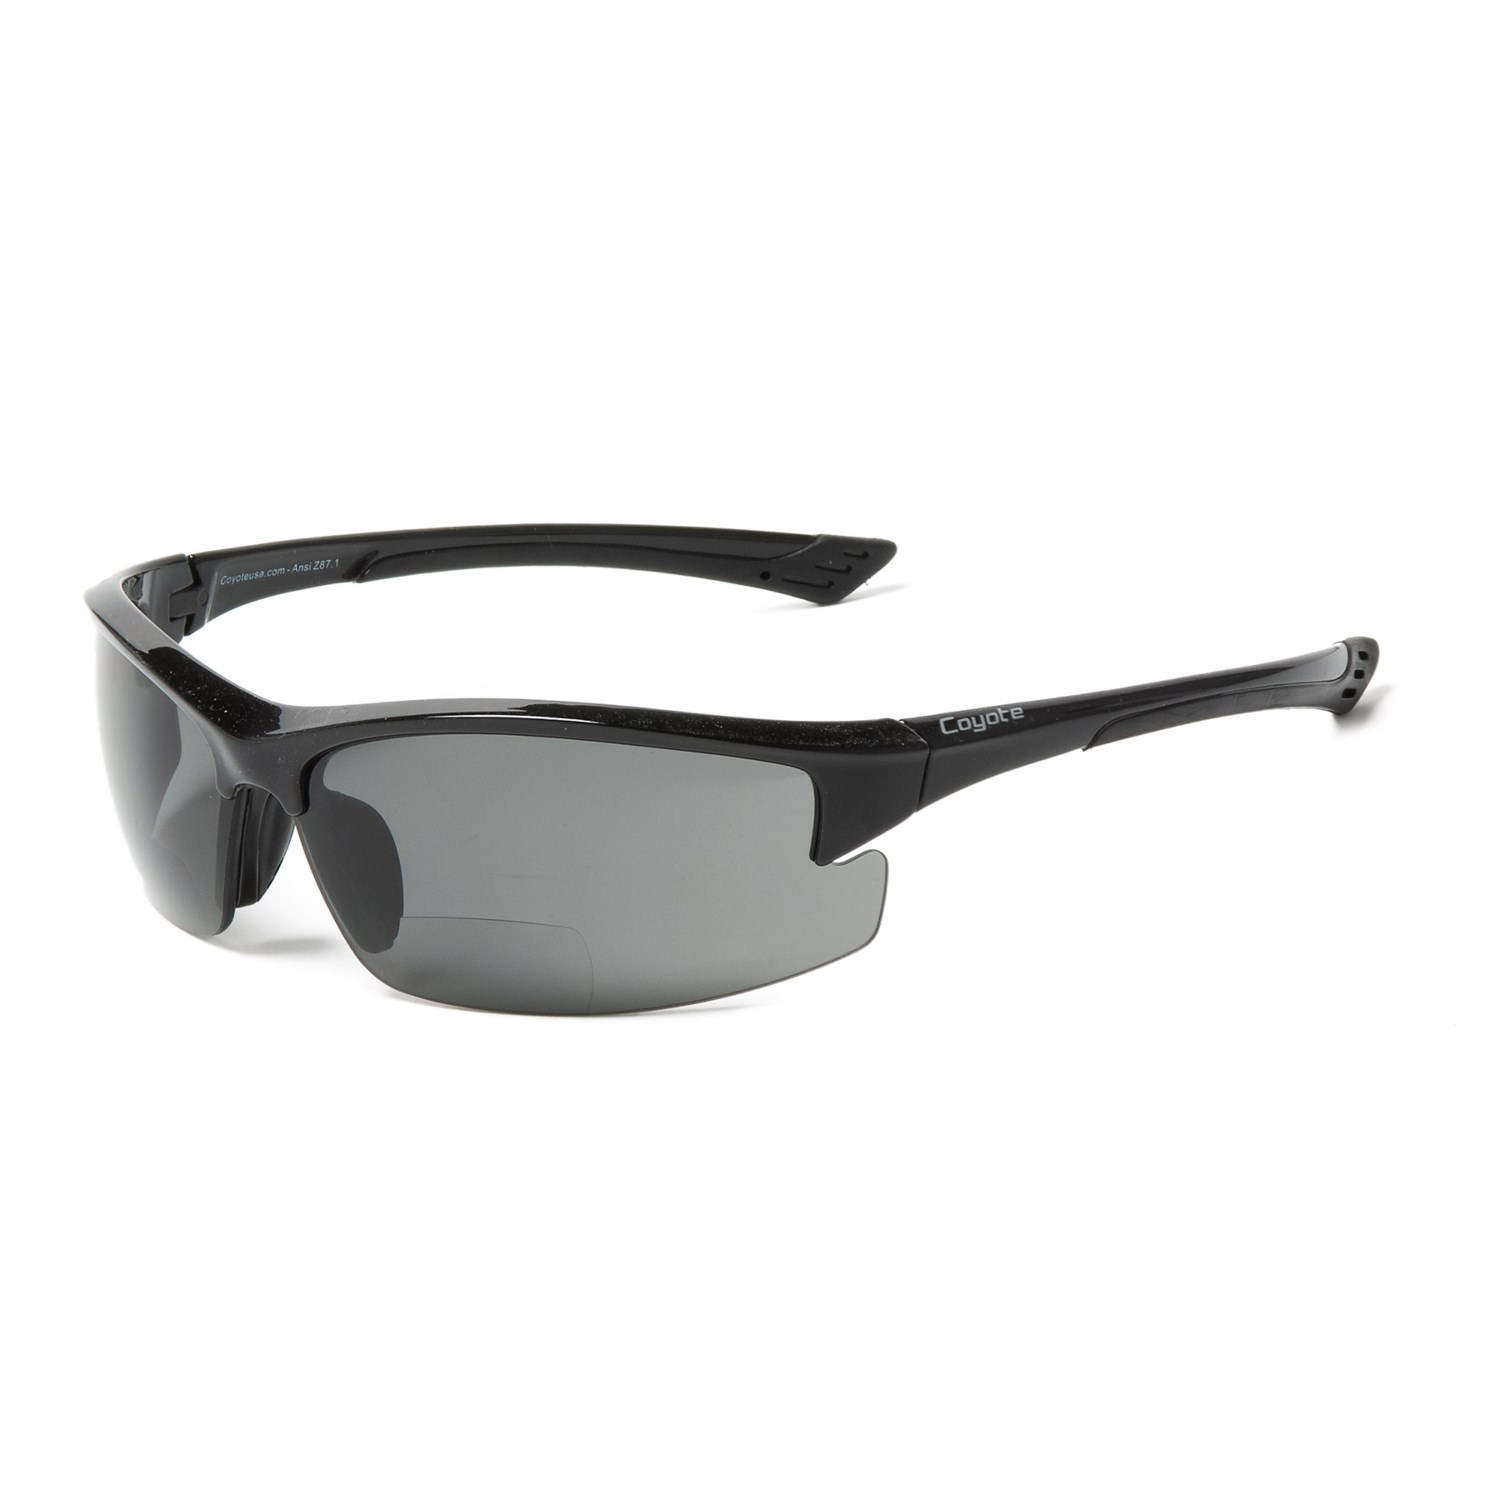 7f6011f4085e Coyote Eyewear BP-7 Rimless Sunglasses - Polarized, Bi-Focal (For Men. Tap  to expand